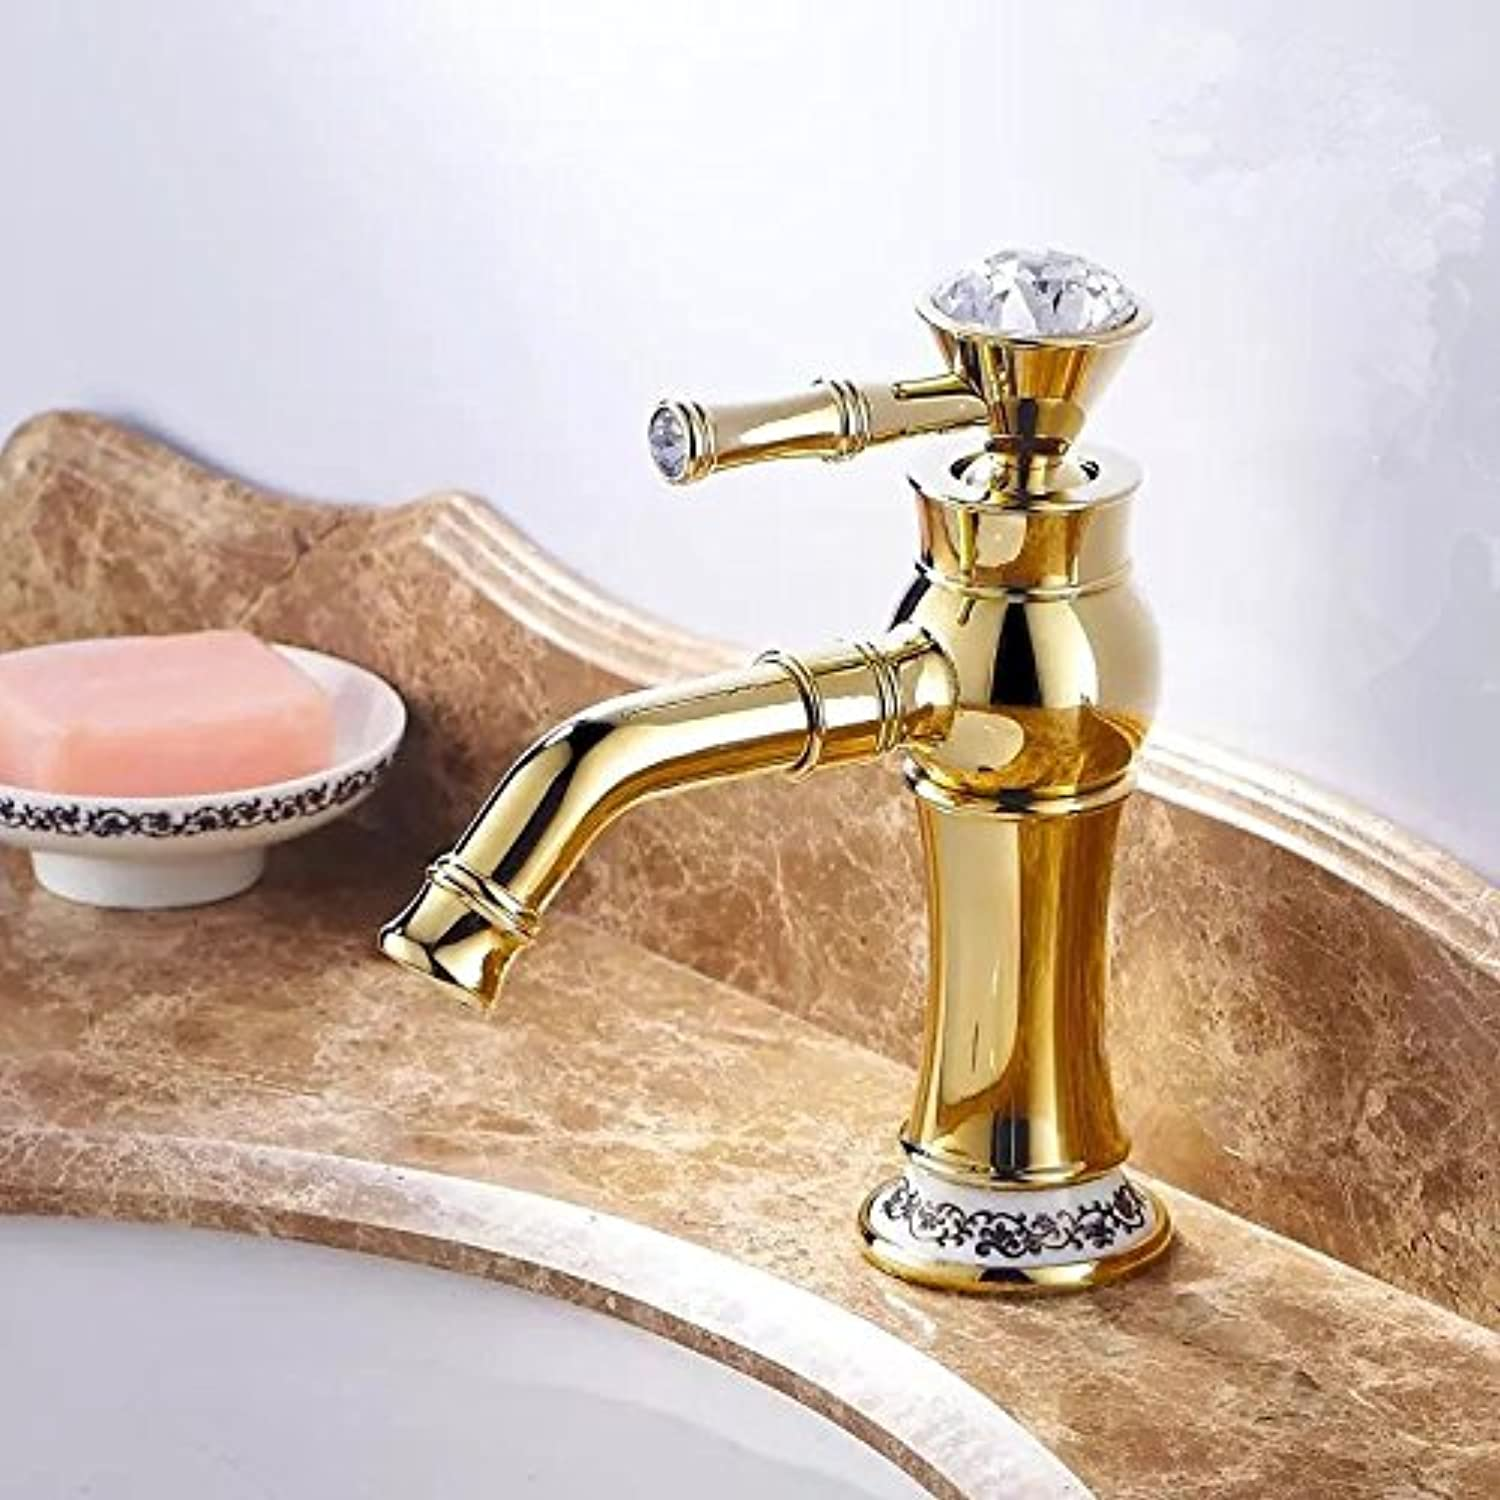 ETERNAL QUALITY Bathroom Sink Basin Tap Brass Mixer Tap Washroom Mixer Faucet Hot and cold basin gold kitchen faucet hot and cold basin A gold ceramic low Kitchen Sink T